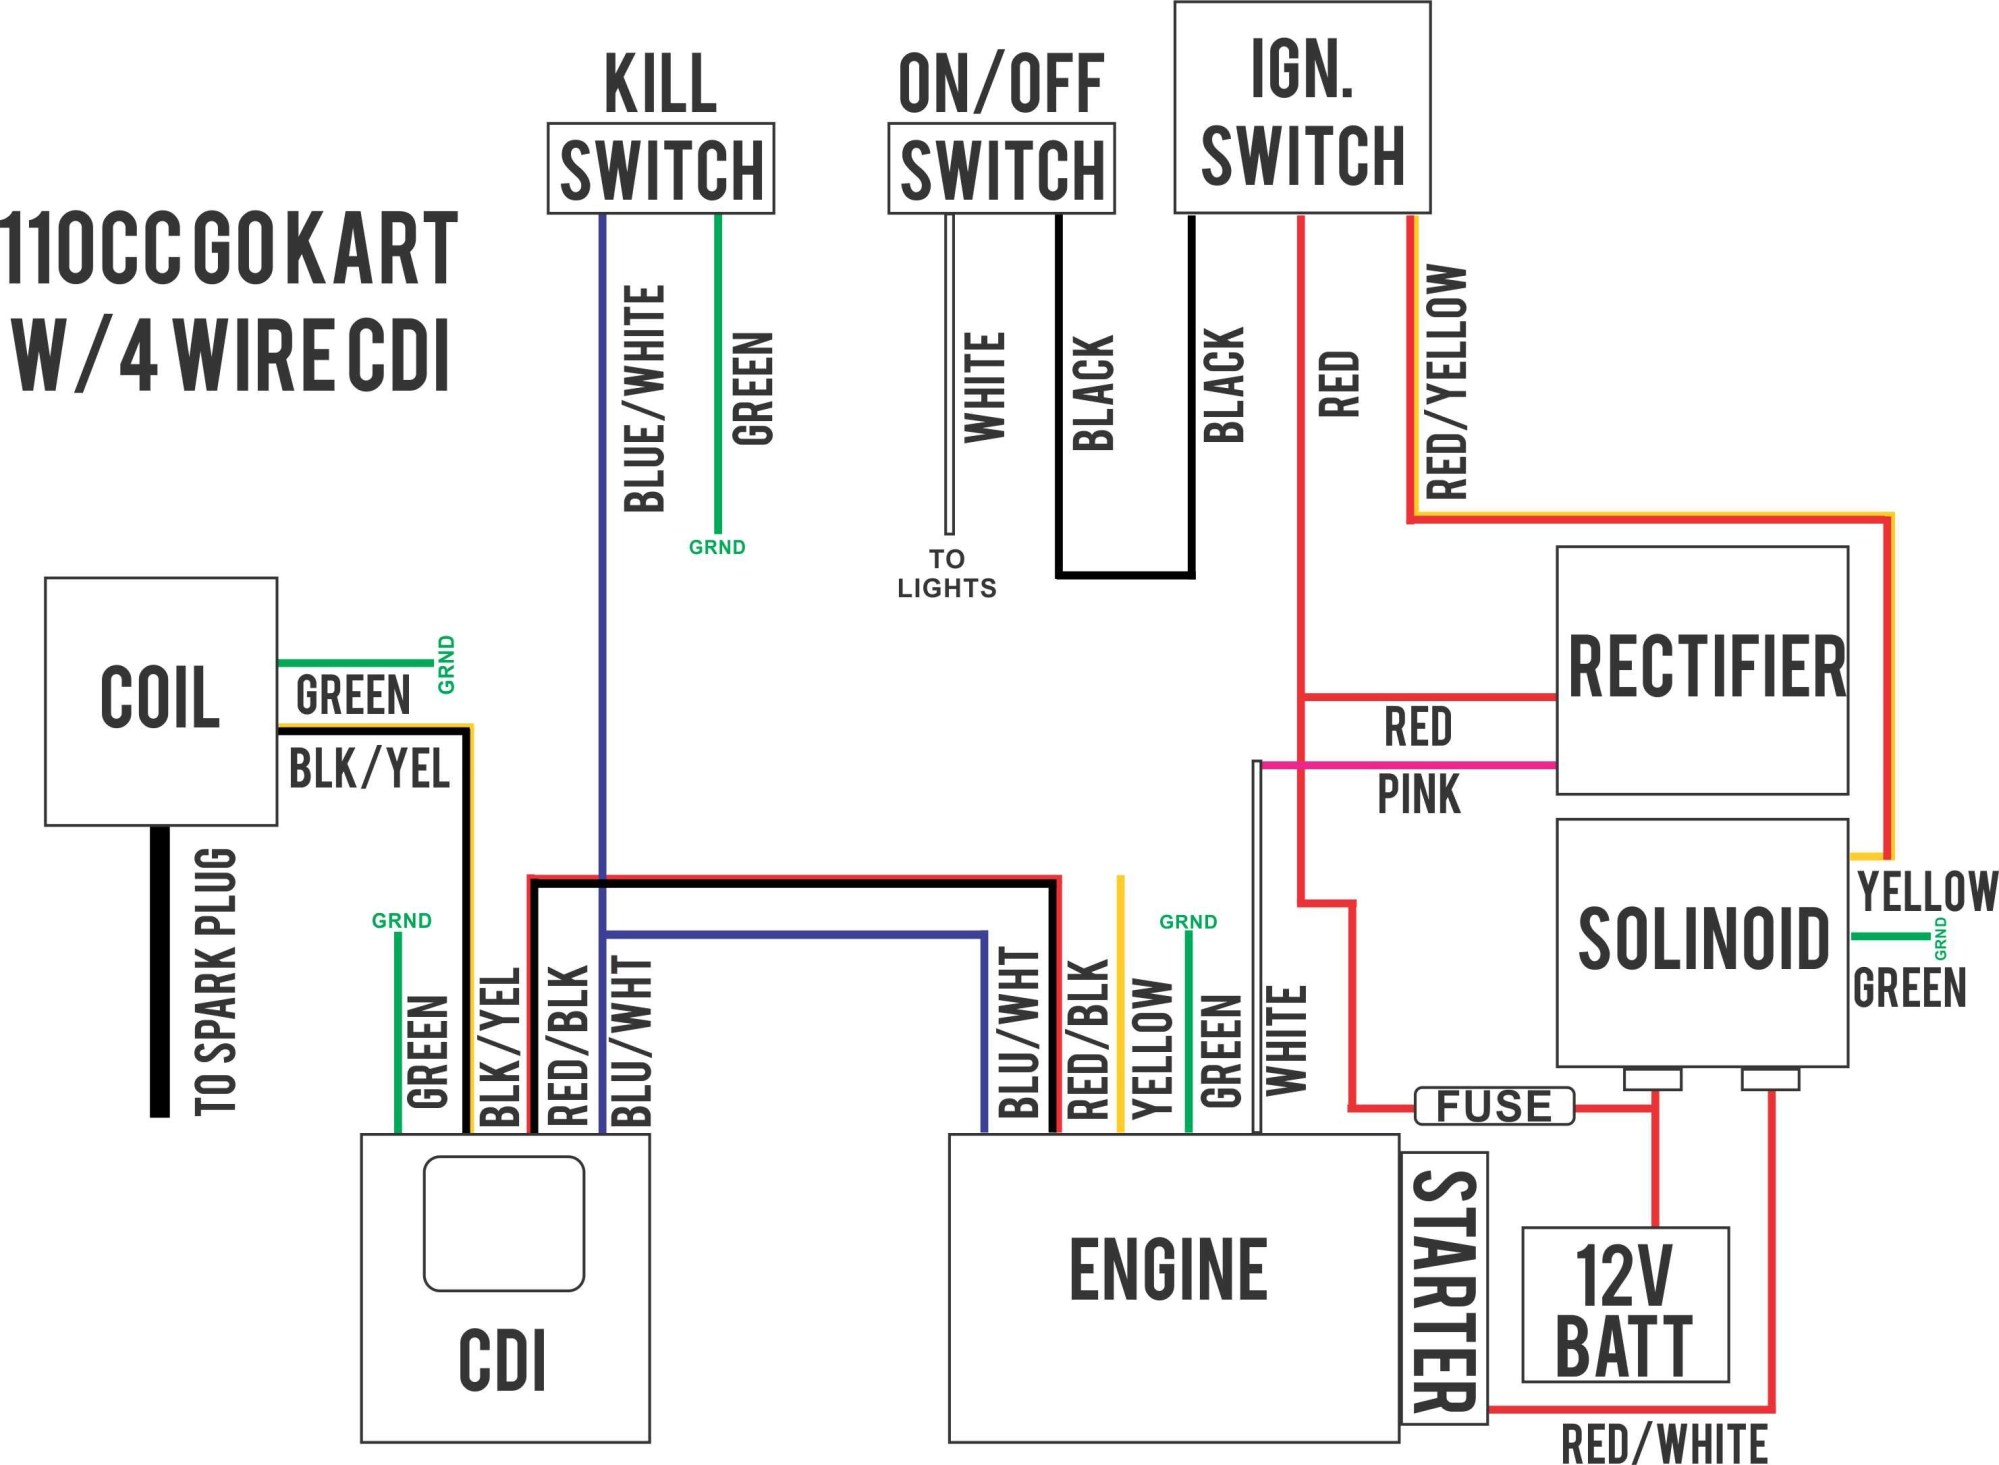 hight resolution of hr34 wiring diagram wiring diagram directv hr34 wiring diagram hr34 wiring diagram